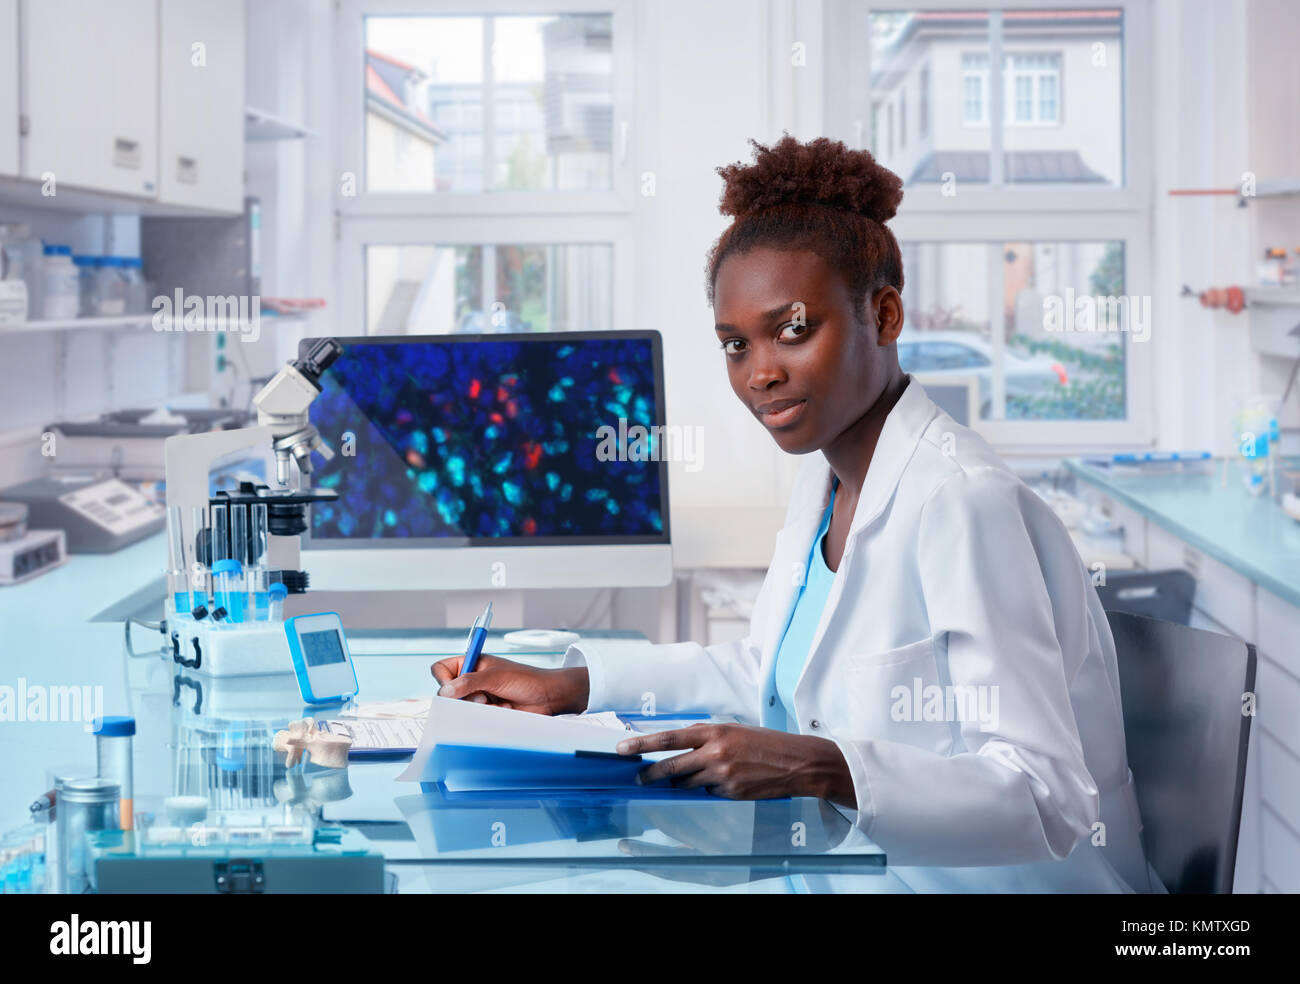 Female African scientist, medical worker, tech or graduate student works in modern biological laboratory. This image - Stock Image